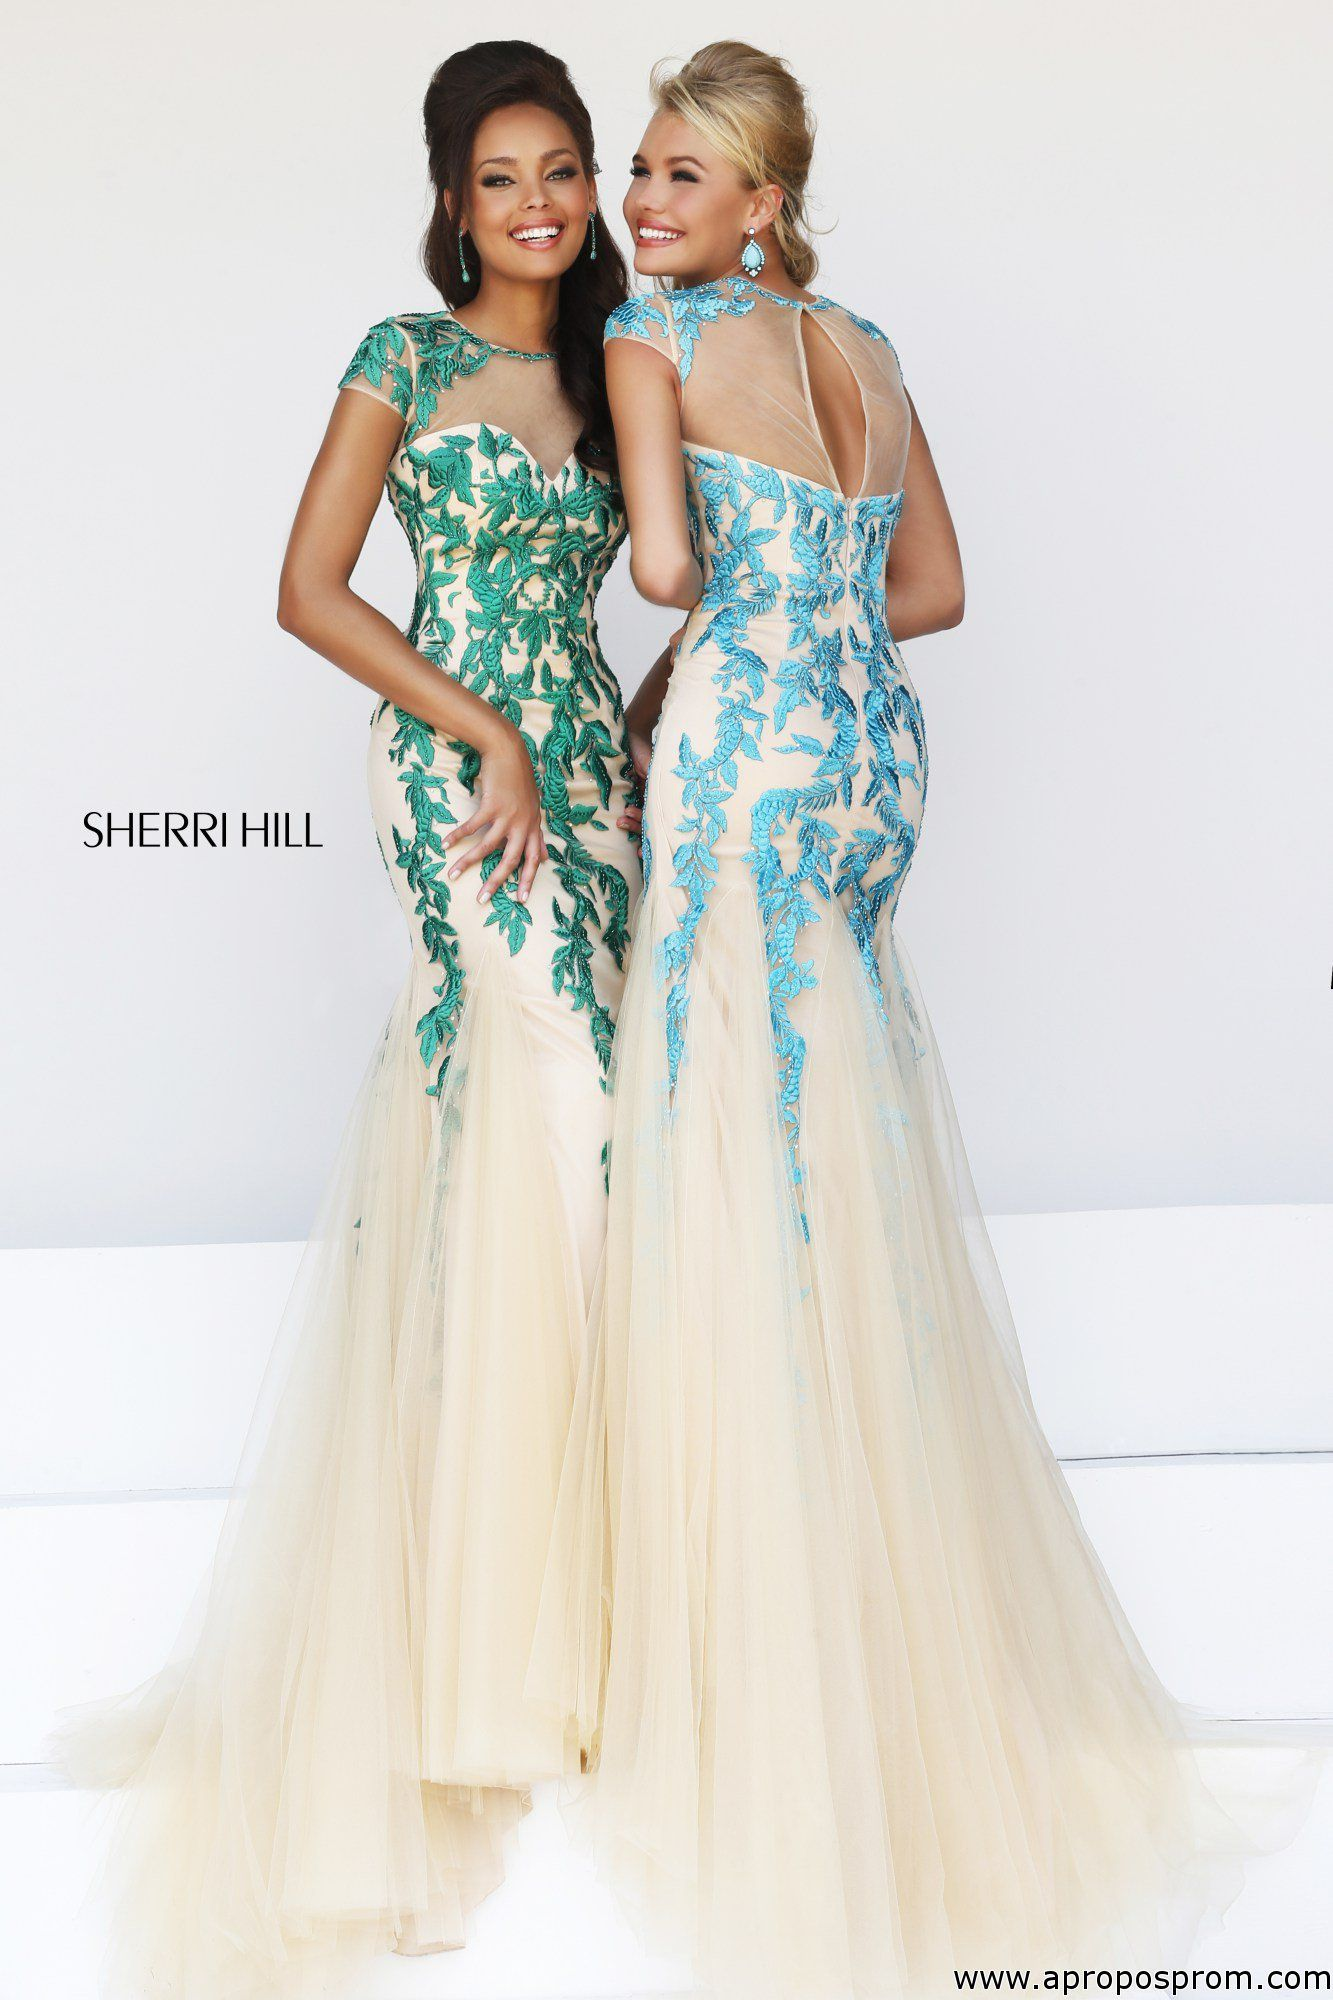 Sherri Hill at Apropos Prom and Bridal 518-452-2524, aproposprom.com ...